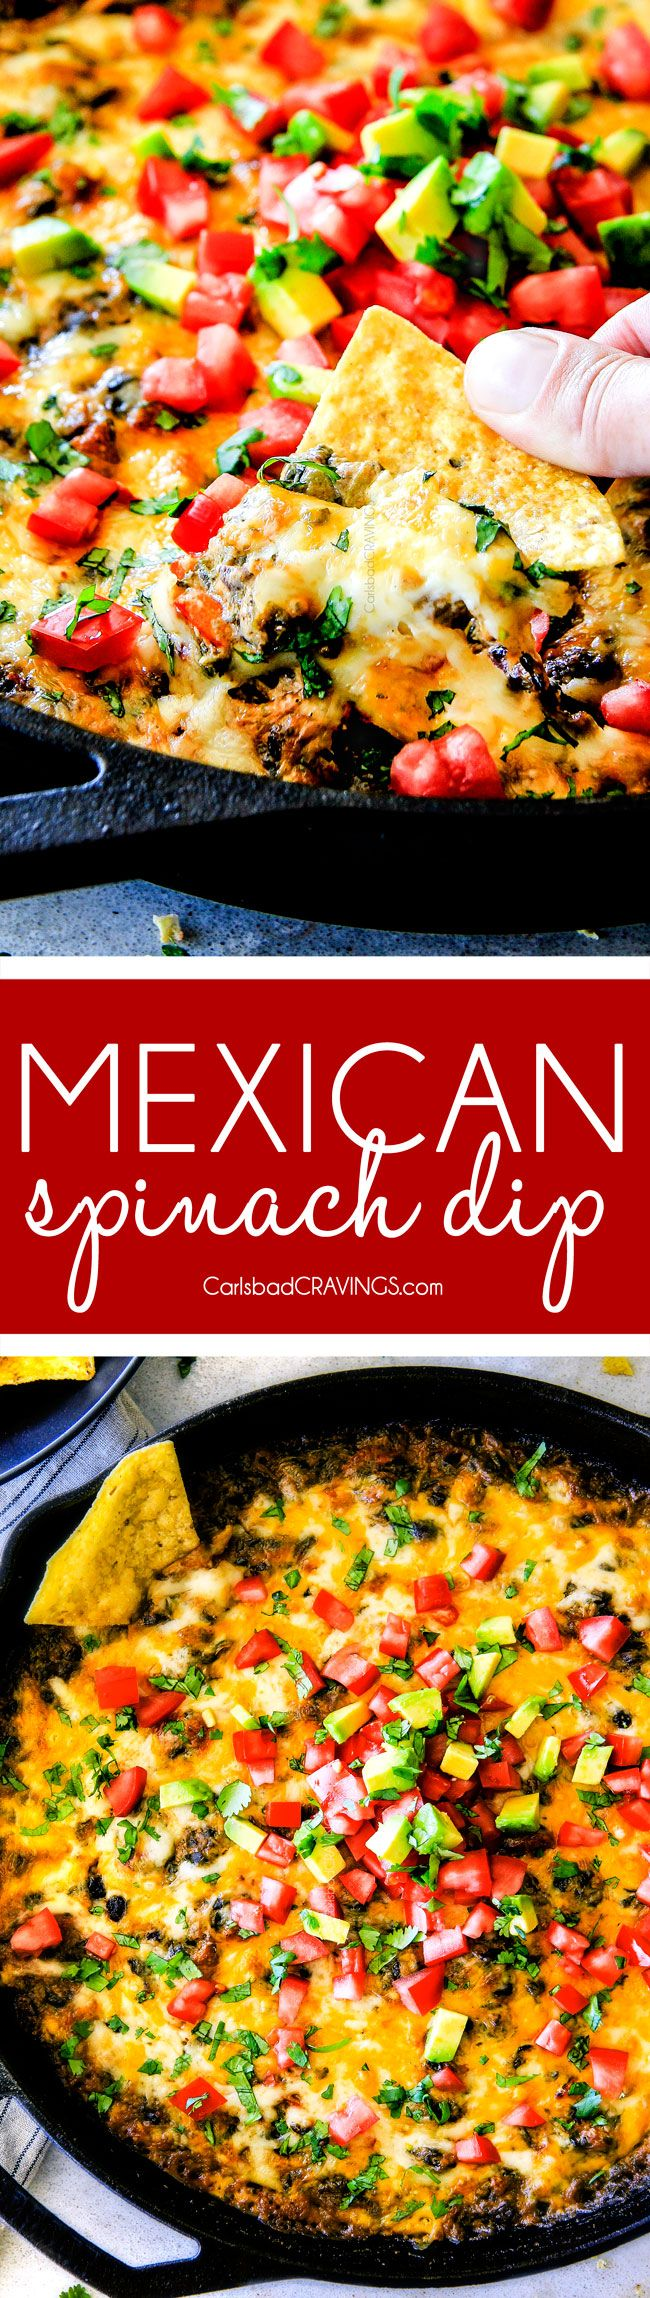 This warm, creamy, cheesy Mexican Spinach Dip is easy, make ahead, bursting with fiestalicious spices and quite possibly the BEST Spinach Dip ever AKA your new back pocket crowd pleasing appetizer for every occasion! #spinachdip #appetizer